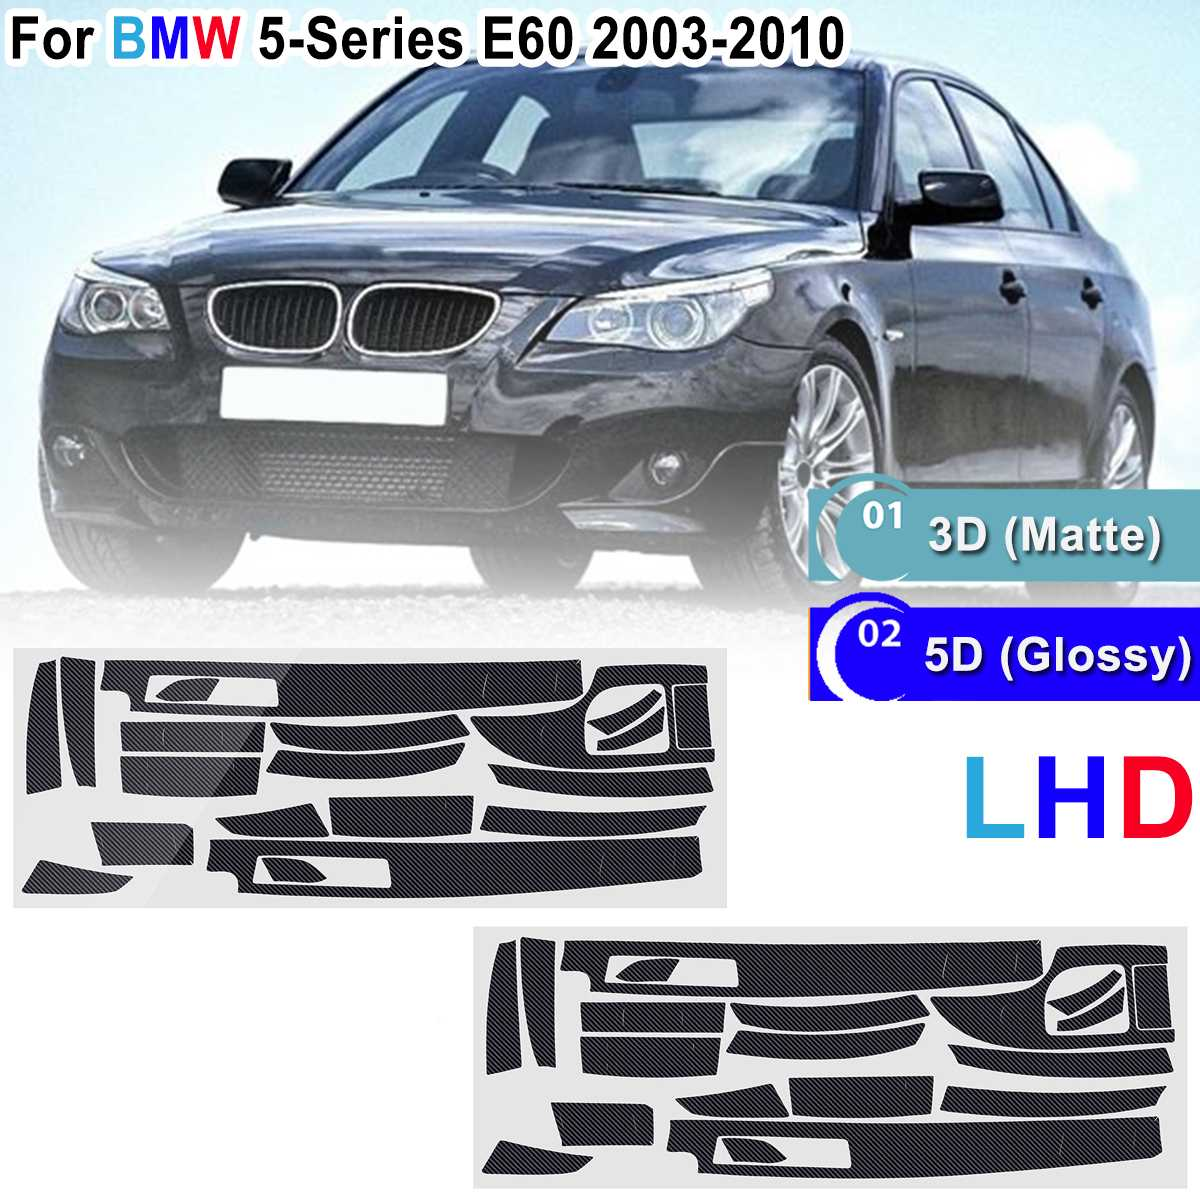 LHD 18pcs Glossy/ Matte <font><b>Carbon</b></font> Fiber Sticker Vinyl <font><b>Interior</b></font> Decal Trim 3D/5D Sticker For <font><b>BMW</b></font> 5-Series <font><b>E60</b></font> 2003-2010 image